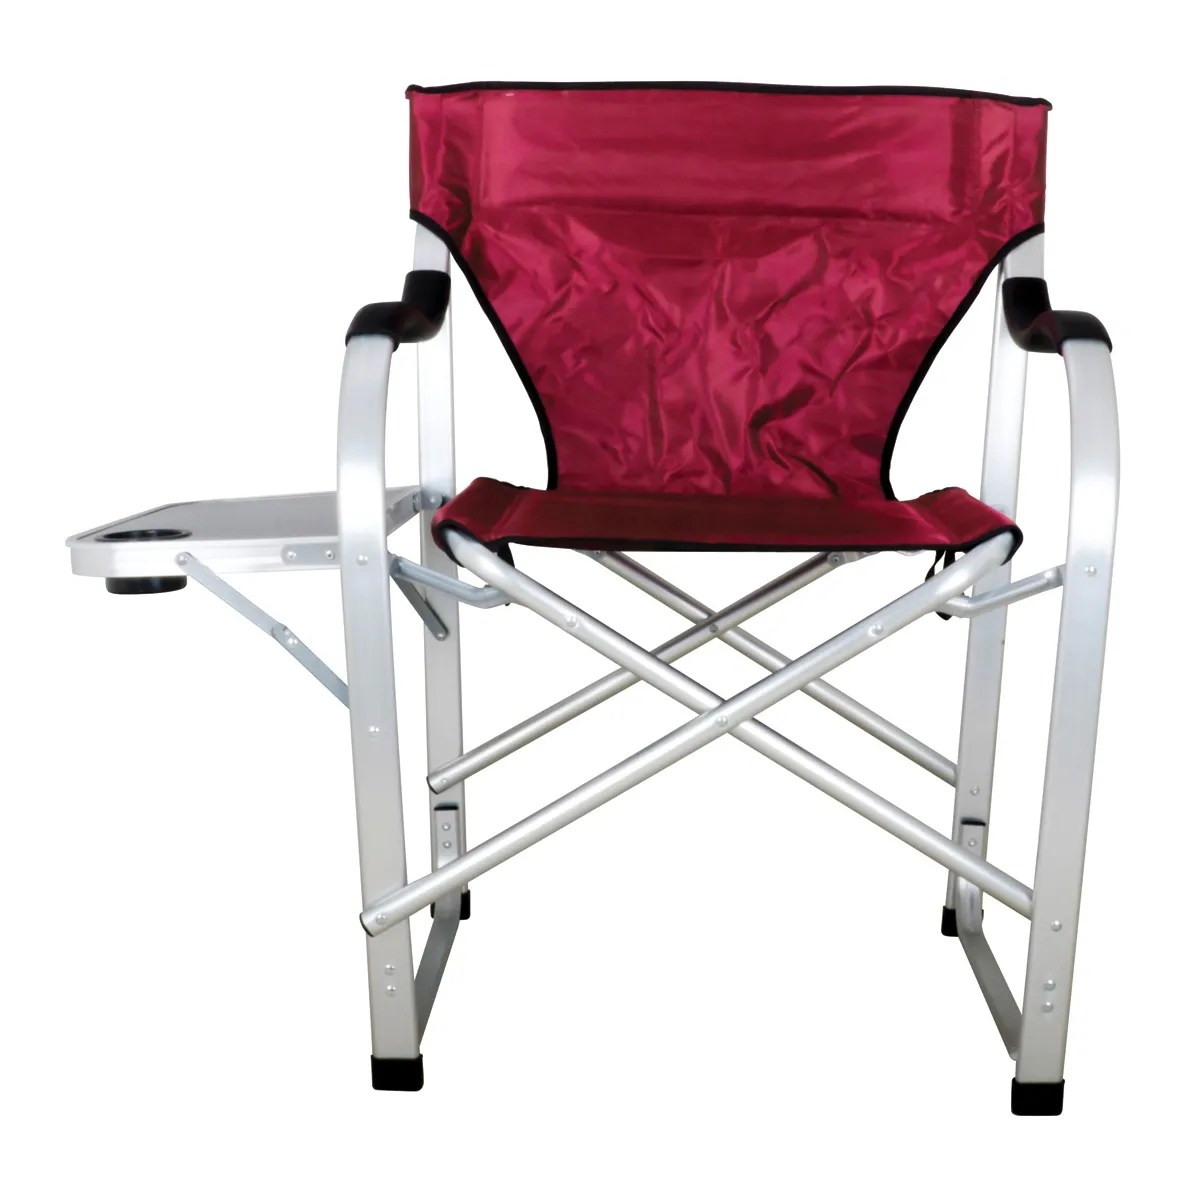 Heavy Duty Outdoor Folding Chairs Heavy Duty Collapsible Lawn Chair Burgundy From